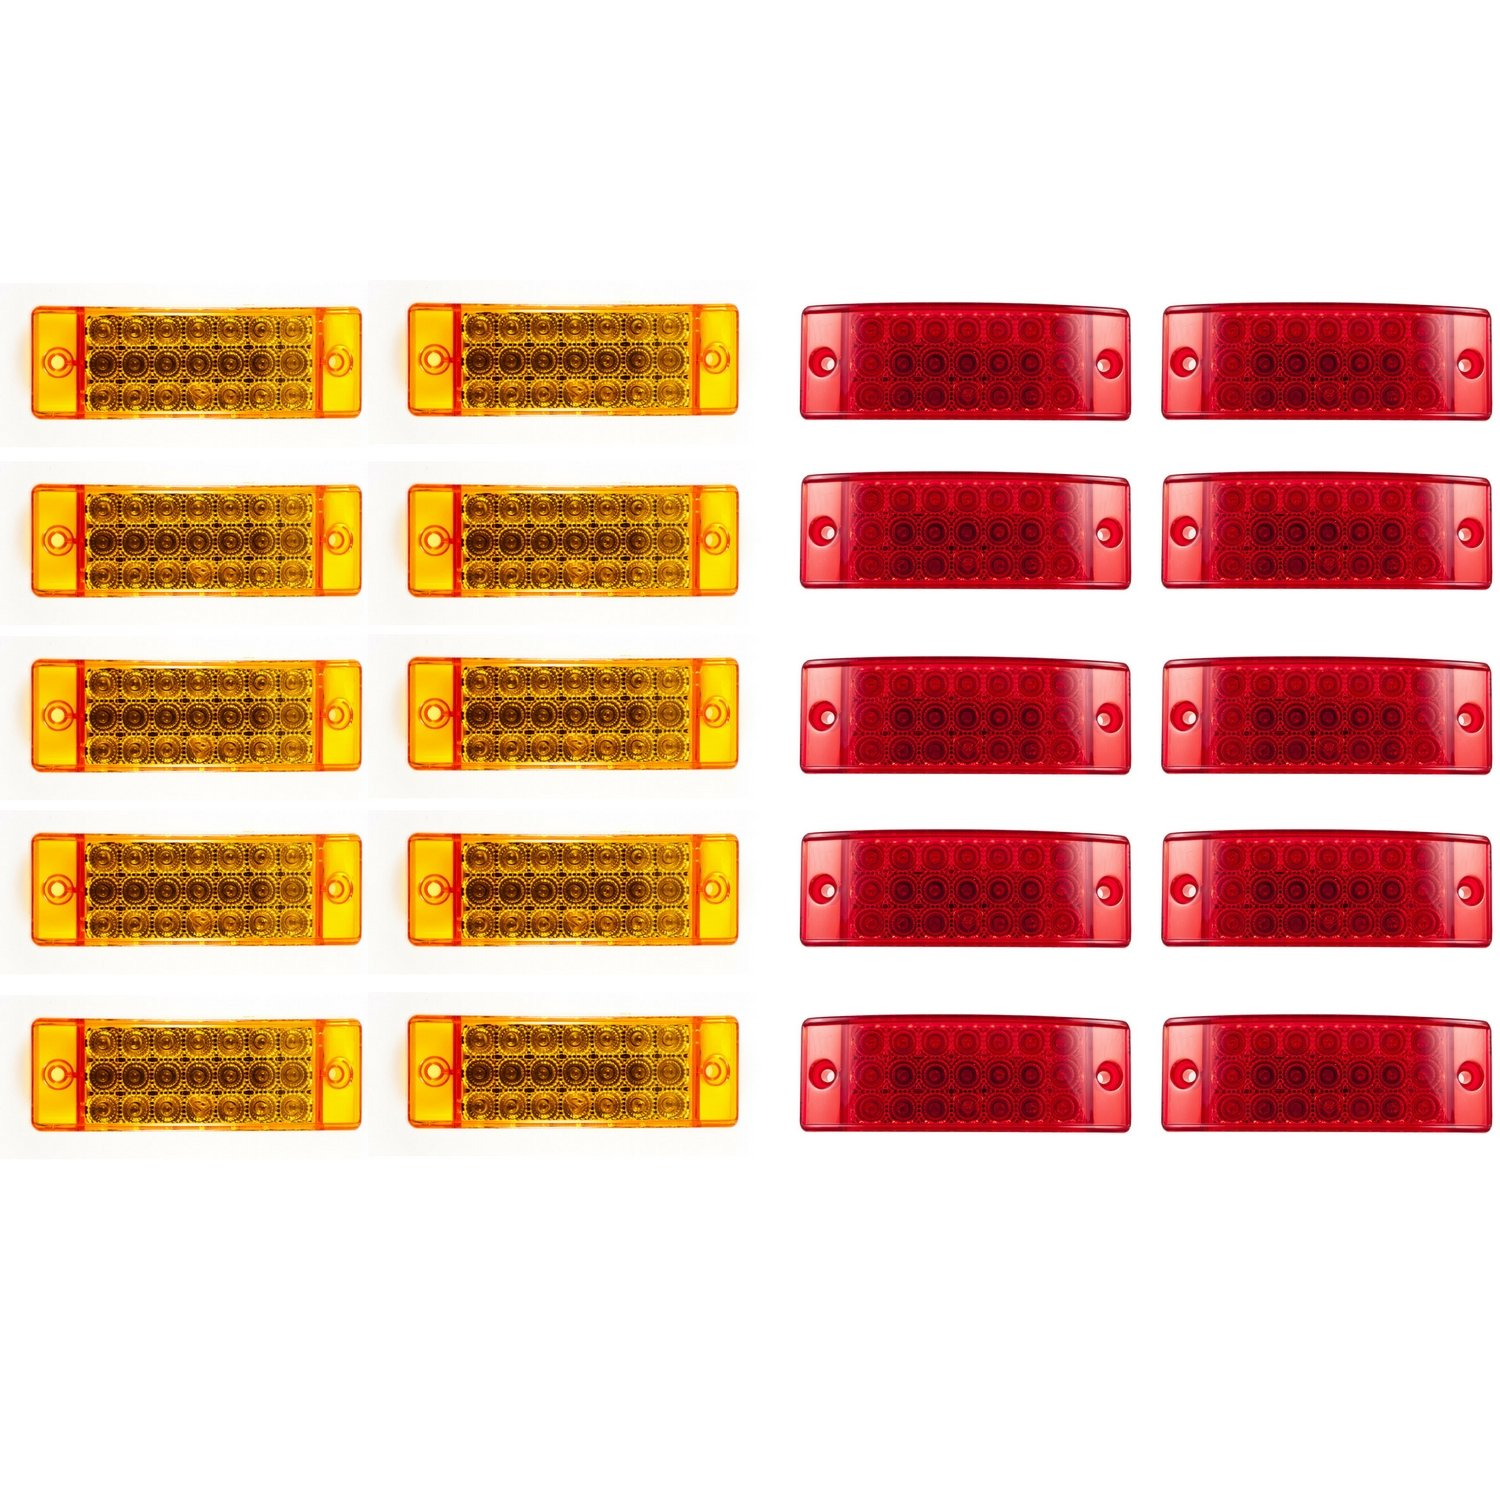 [ALL STAR TRUCK PARTS] Qty 10 Red + Qty 10 Amber 6'' 21 LED Side Marker Clearance Light Rectangle 12V Truck Trailer Camper Boat Marine [Sealed and Waterproof]